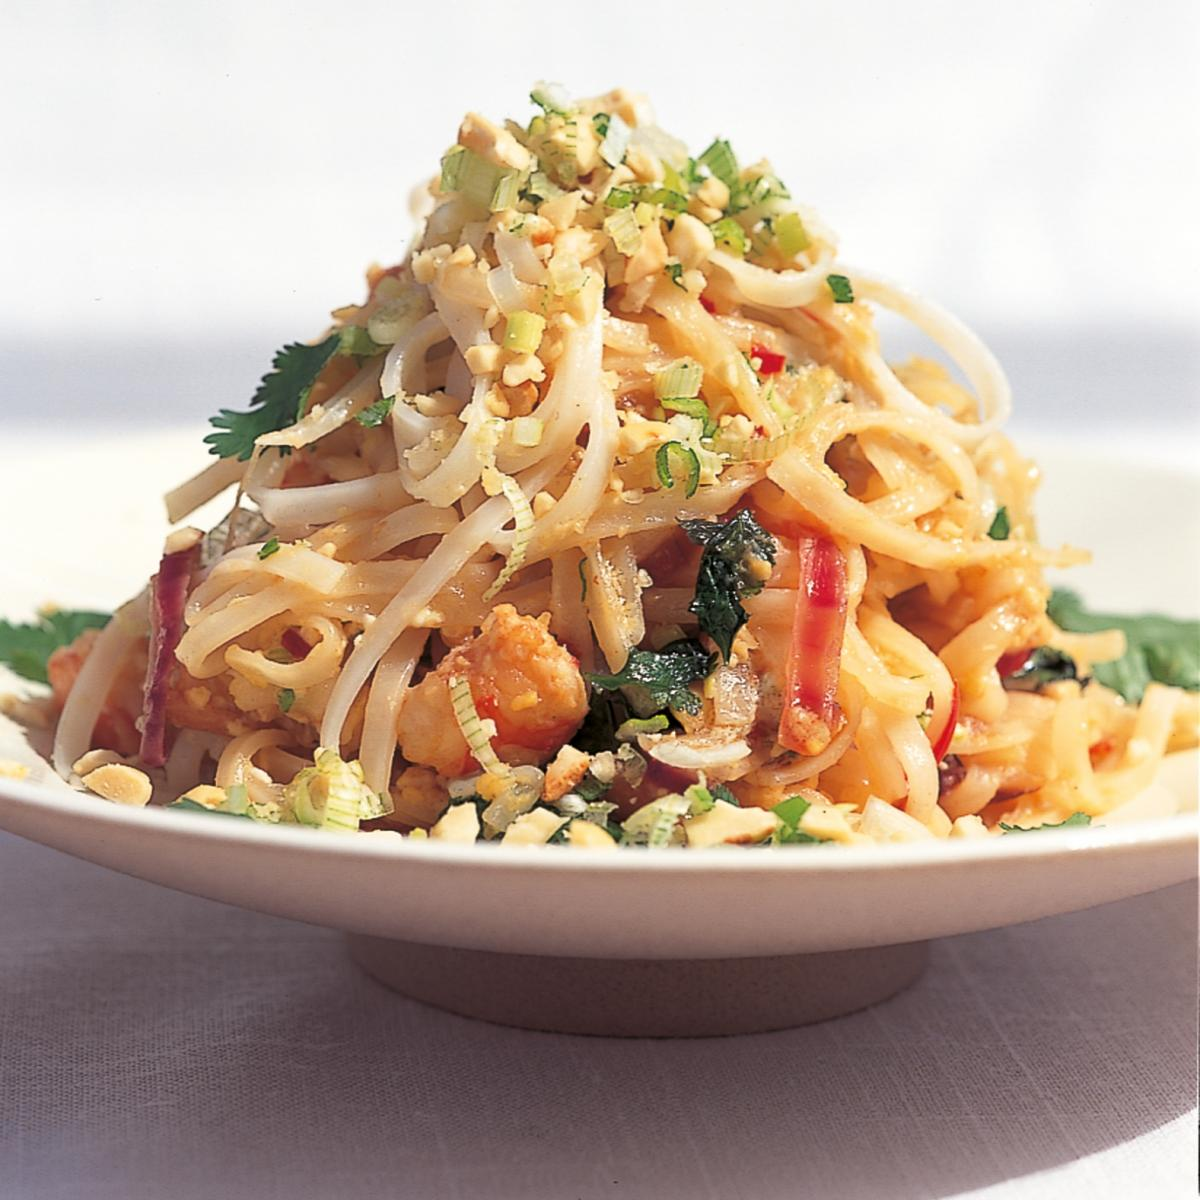 A picture of Delia's Pad Thai Noodles with Shrimps recipe